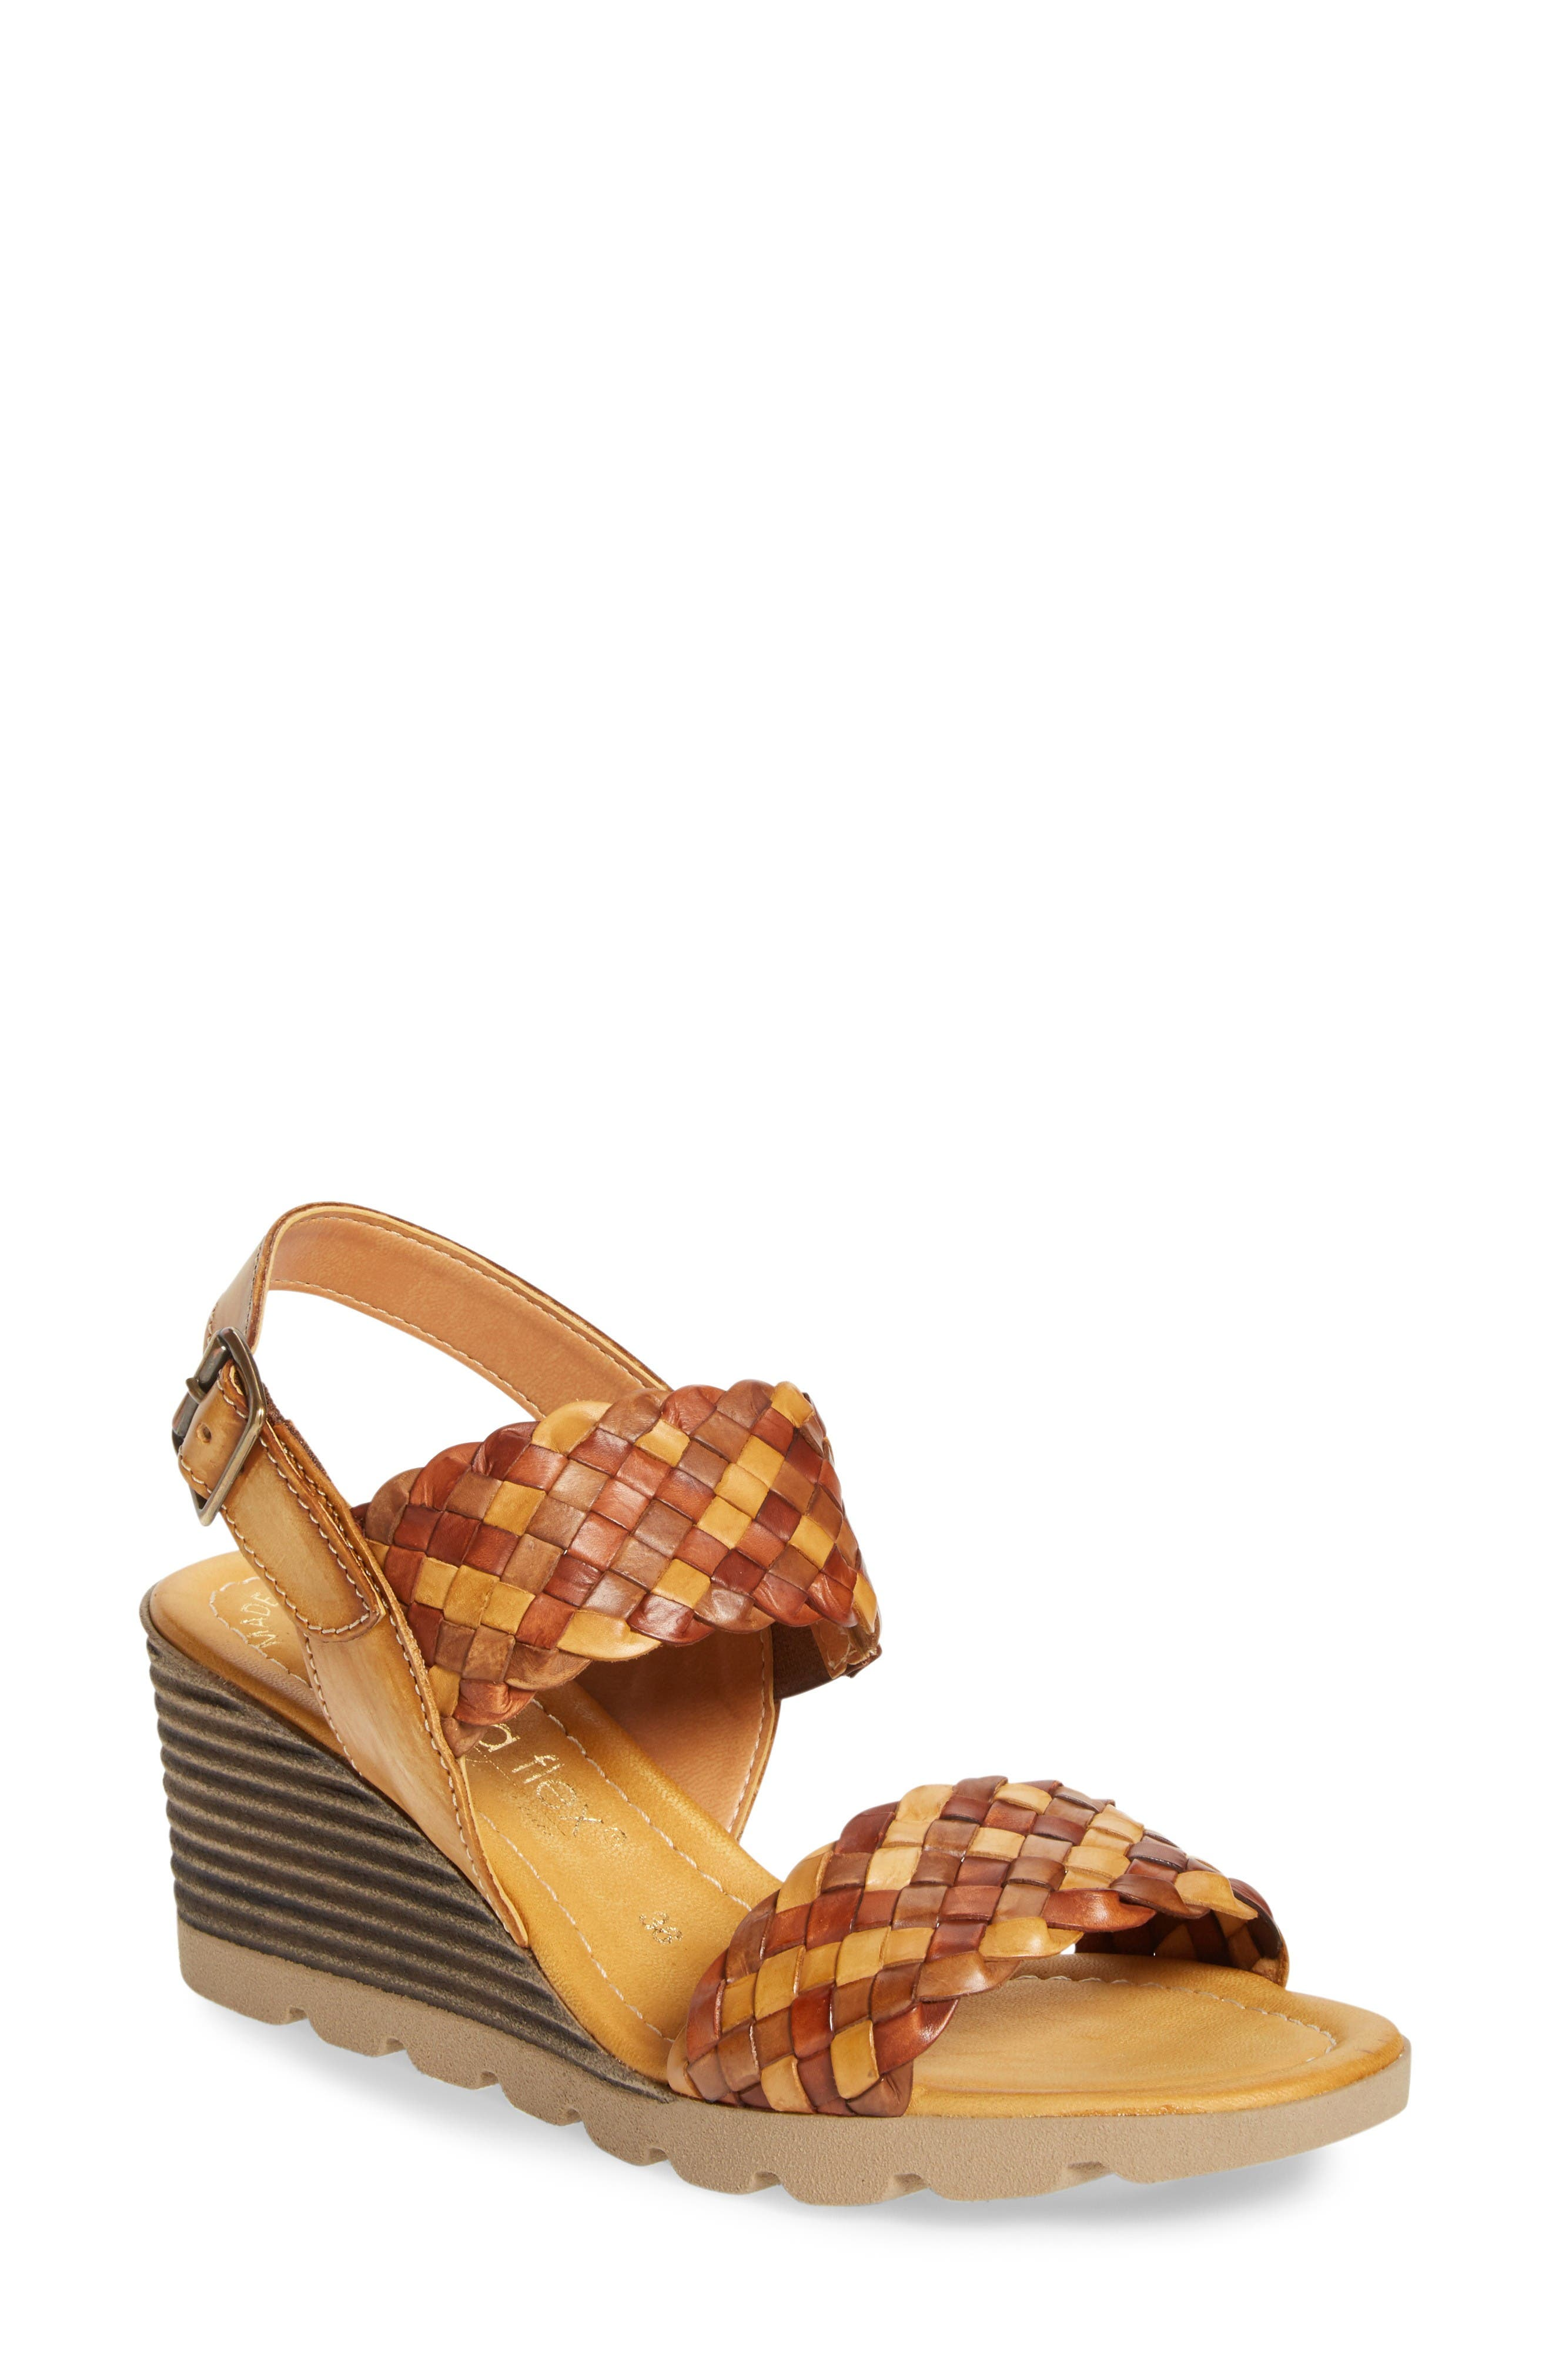 NAPA FLEX Cool Wedge Sandal